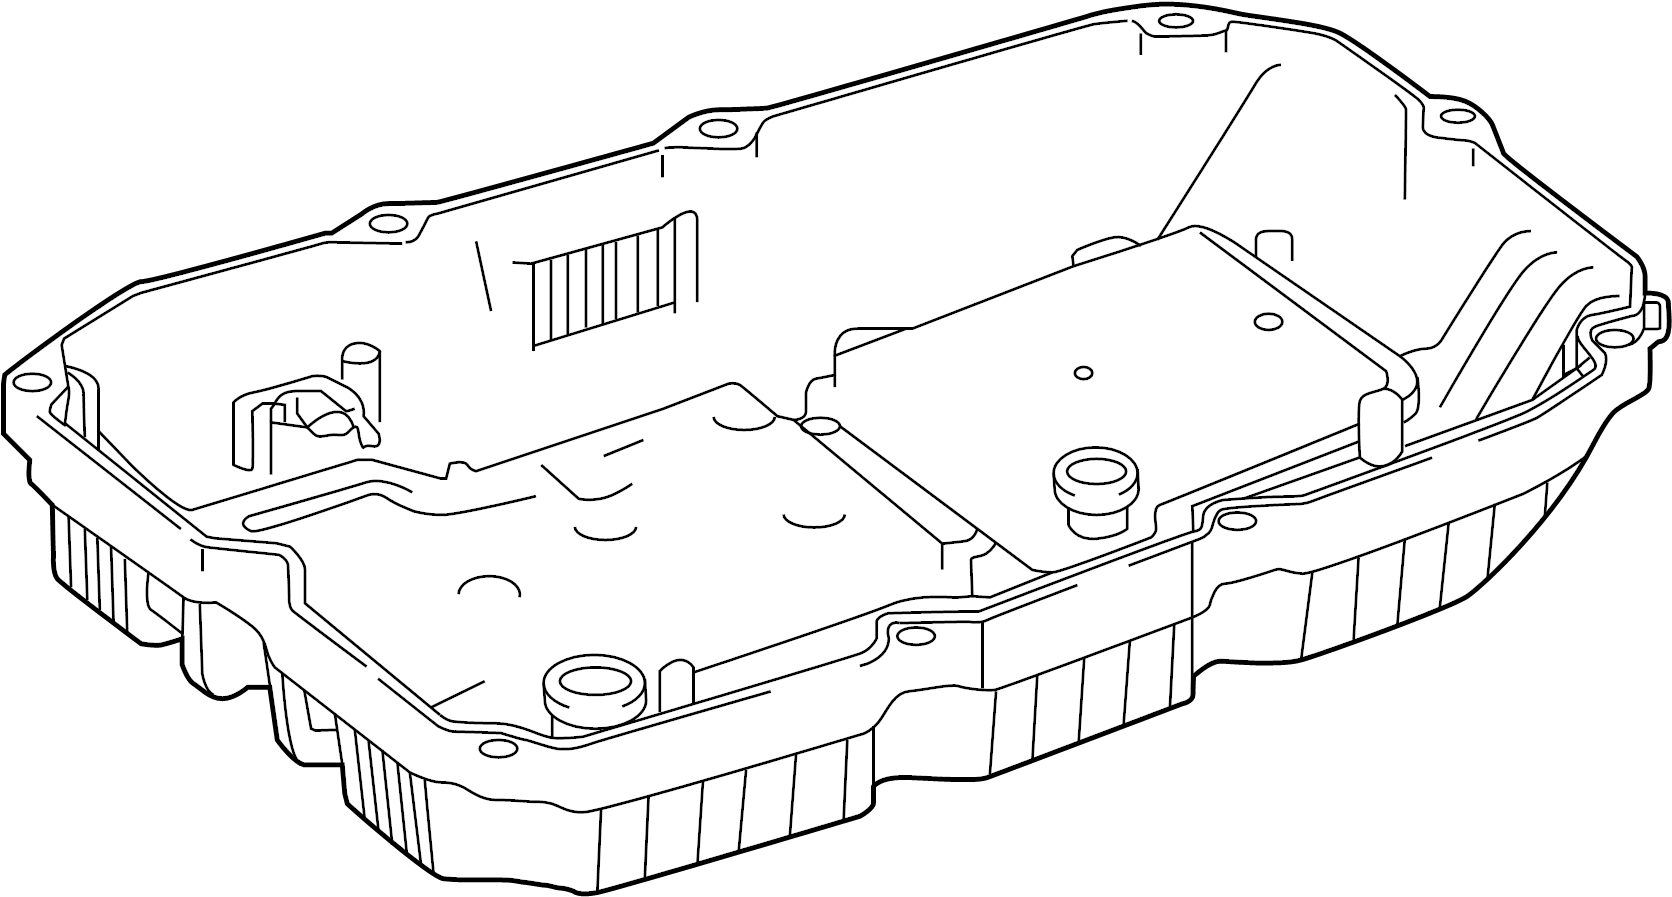 Mercedes-Benz GL550 Automatic Transmission Oil Pan